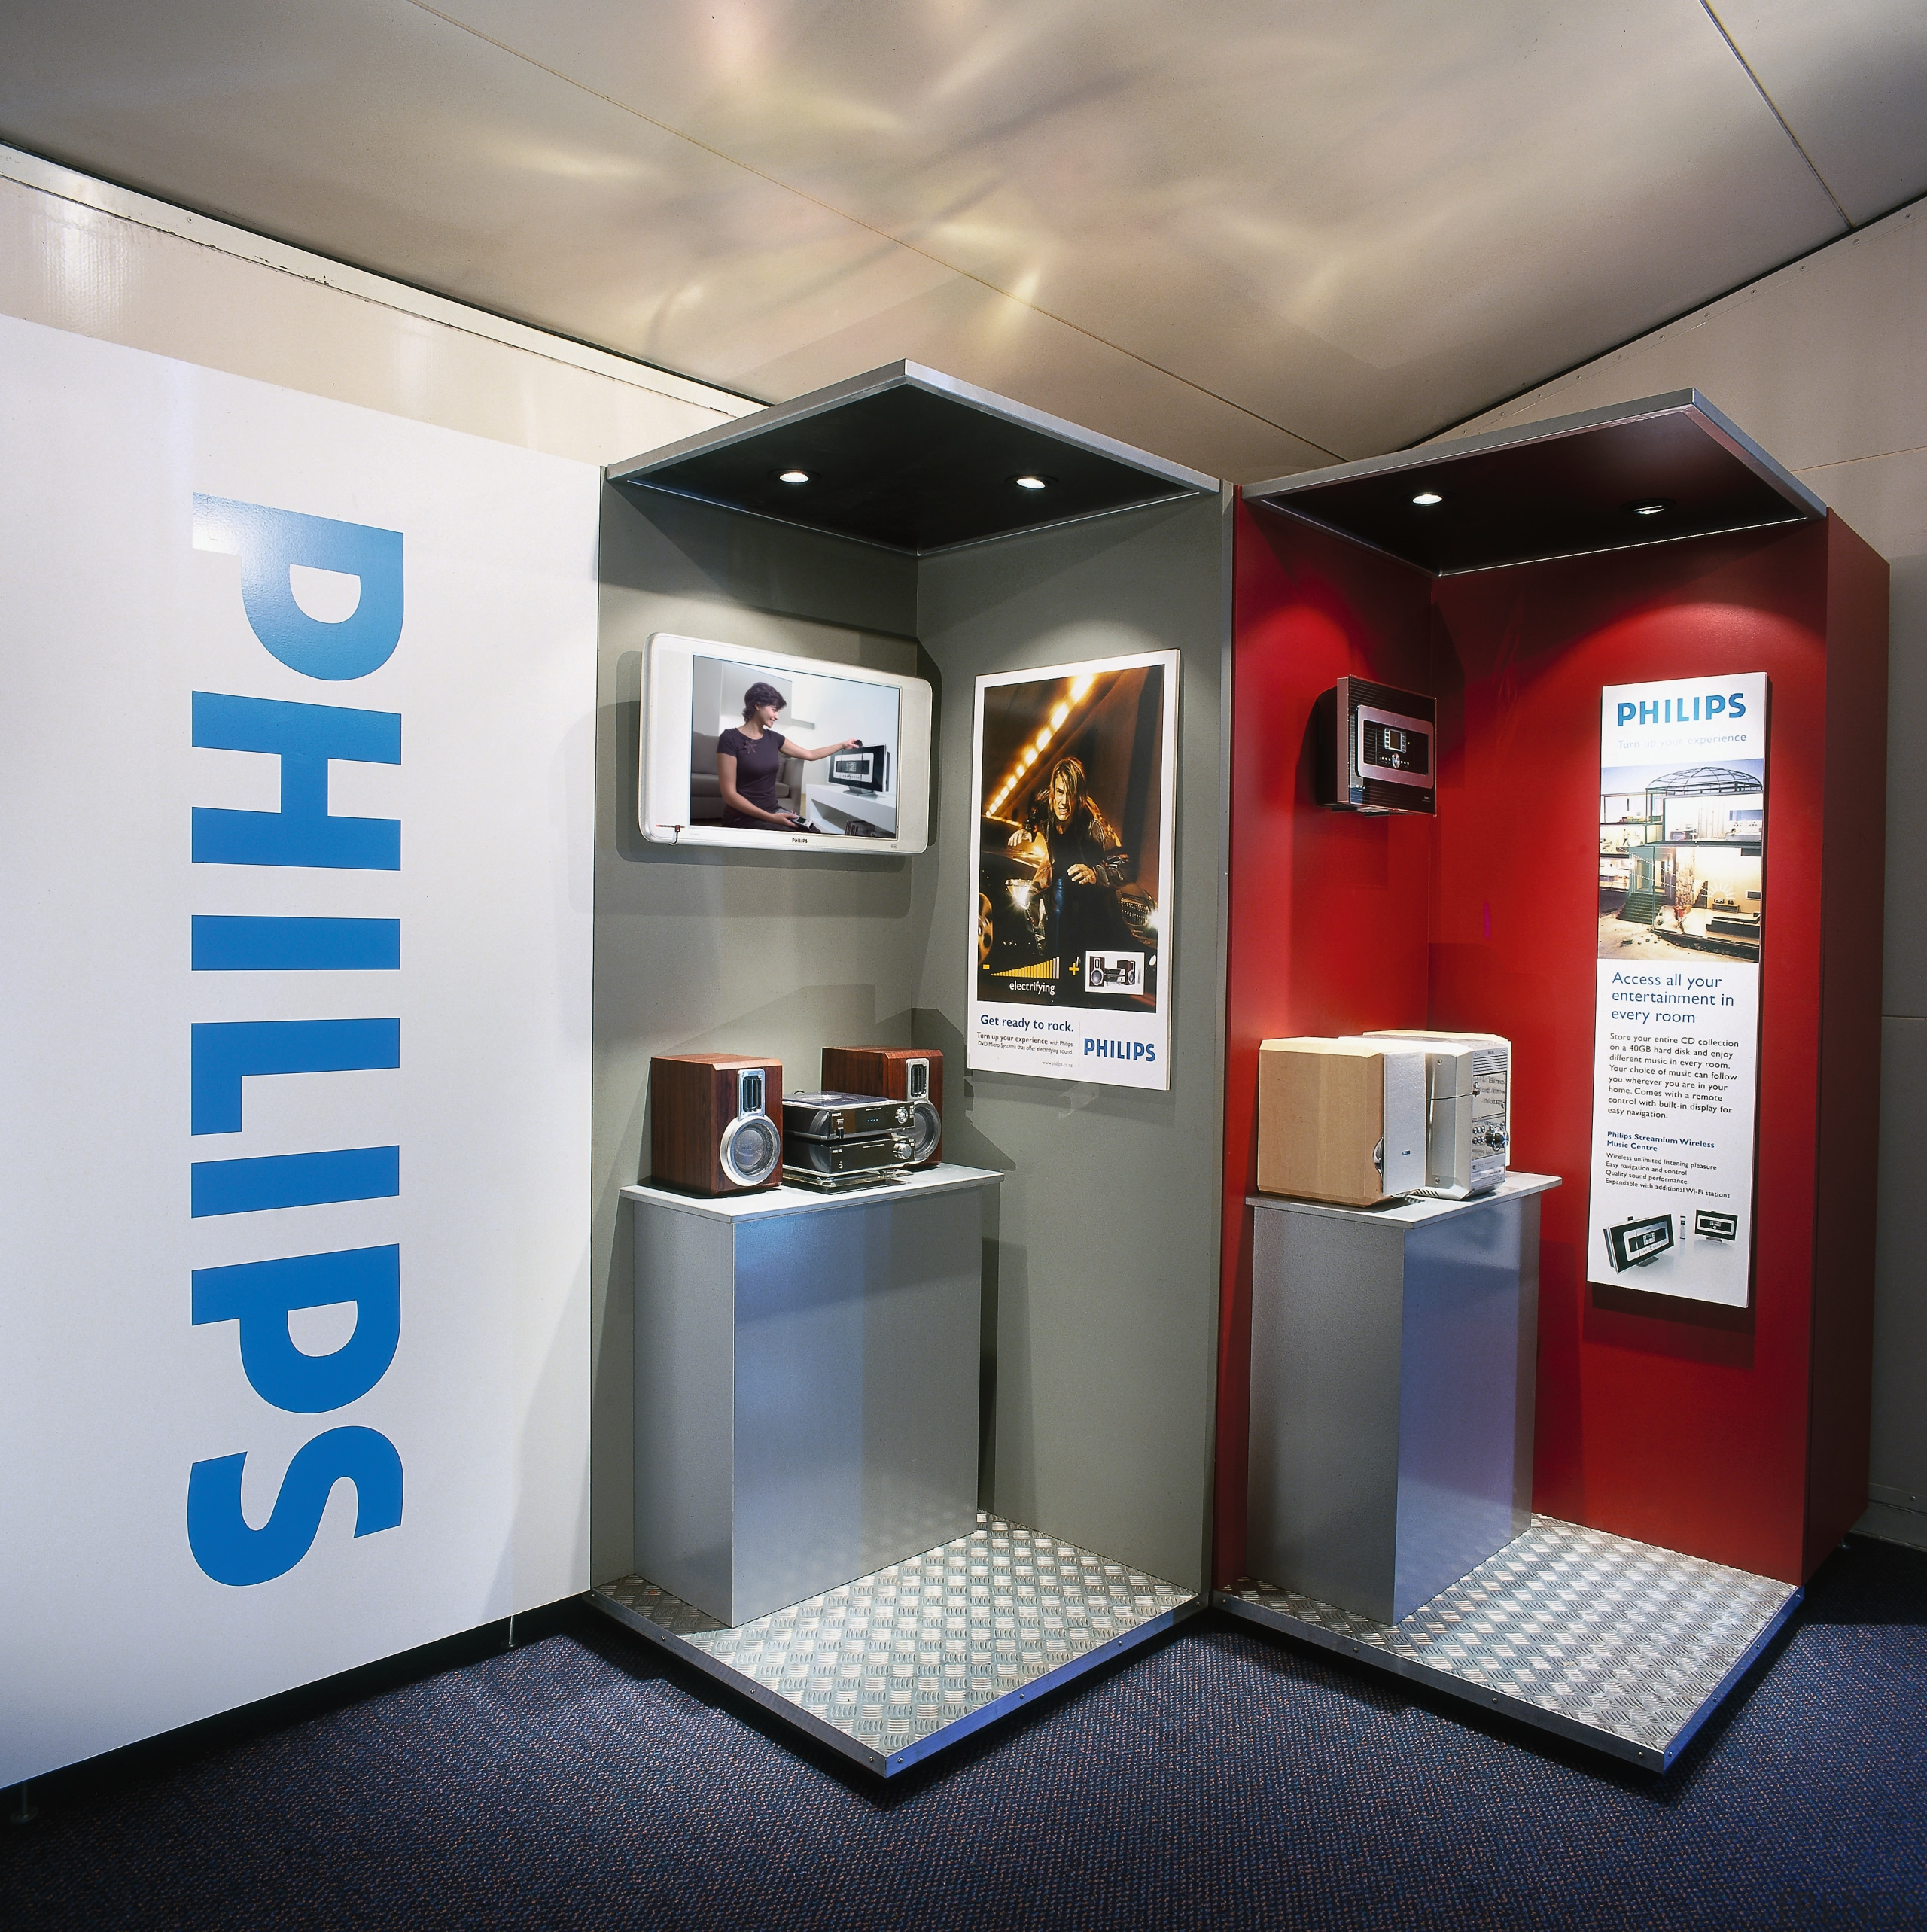 view of the phillips dvd microsystem offers big exhibition, interior design, gray